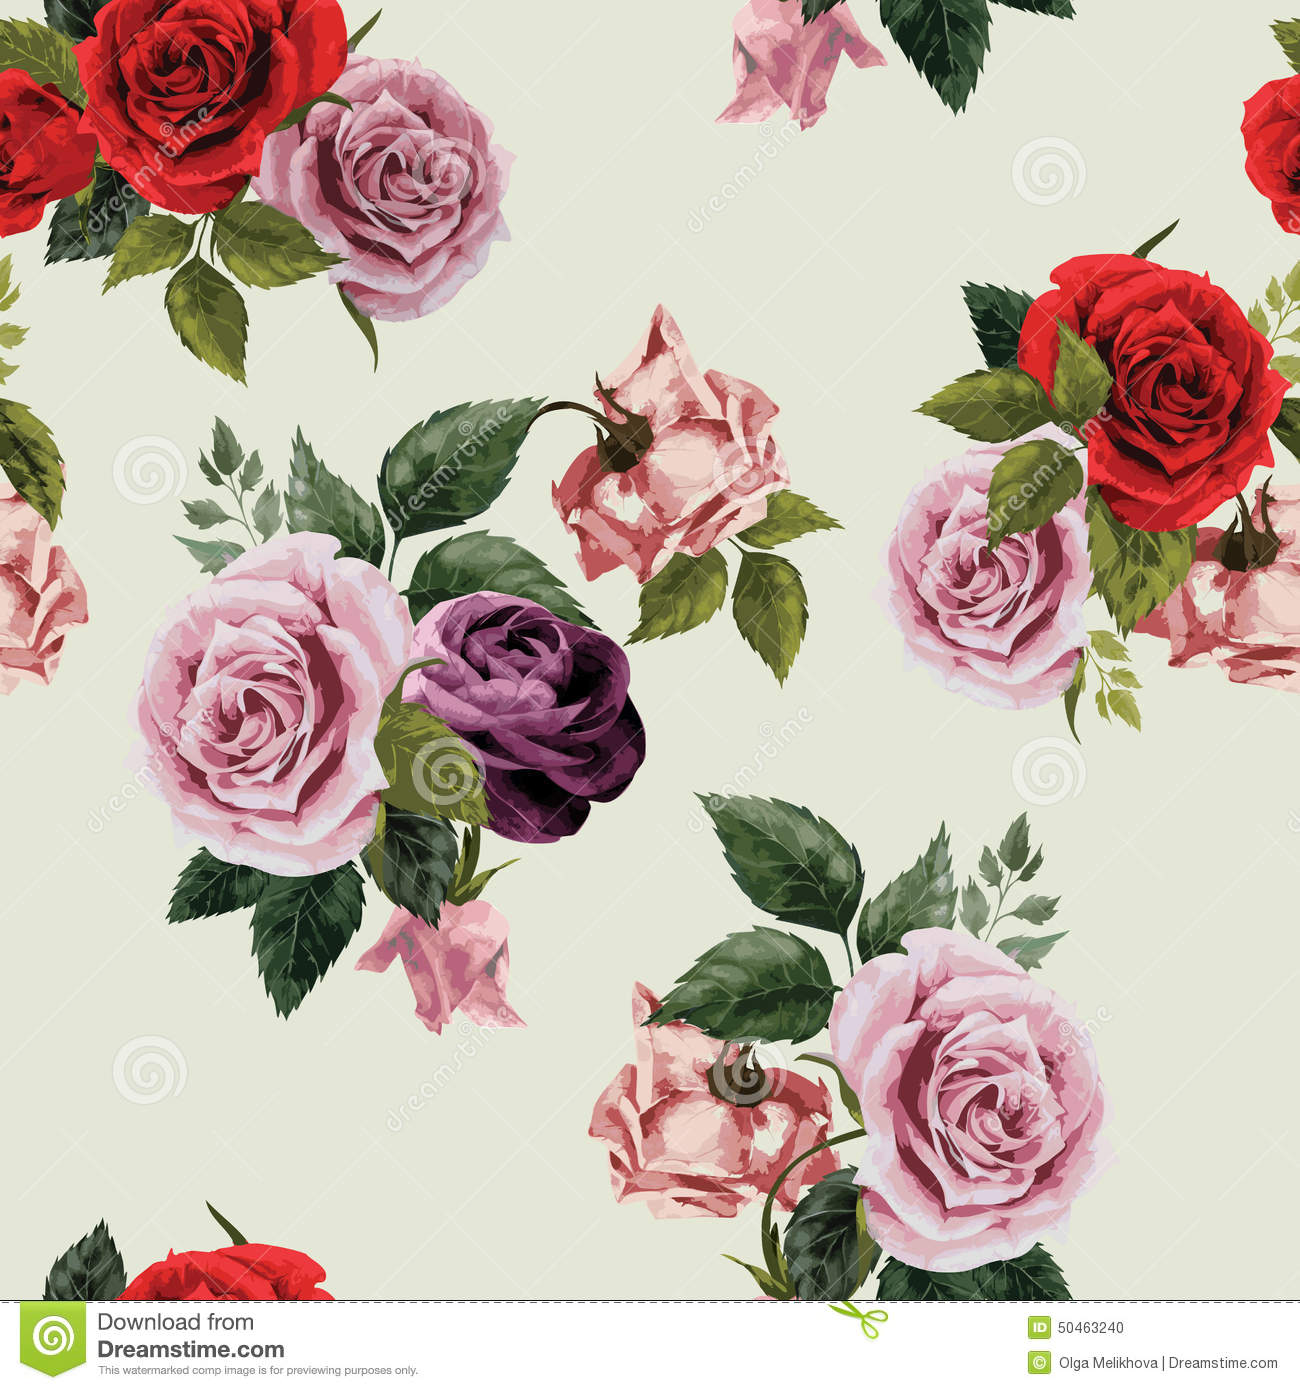 Roses flower, Roses photos, roses wallpaper for your ...